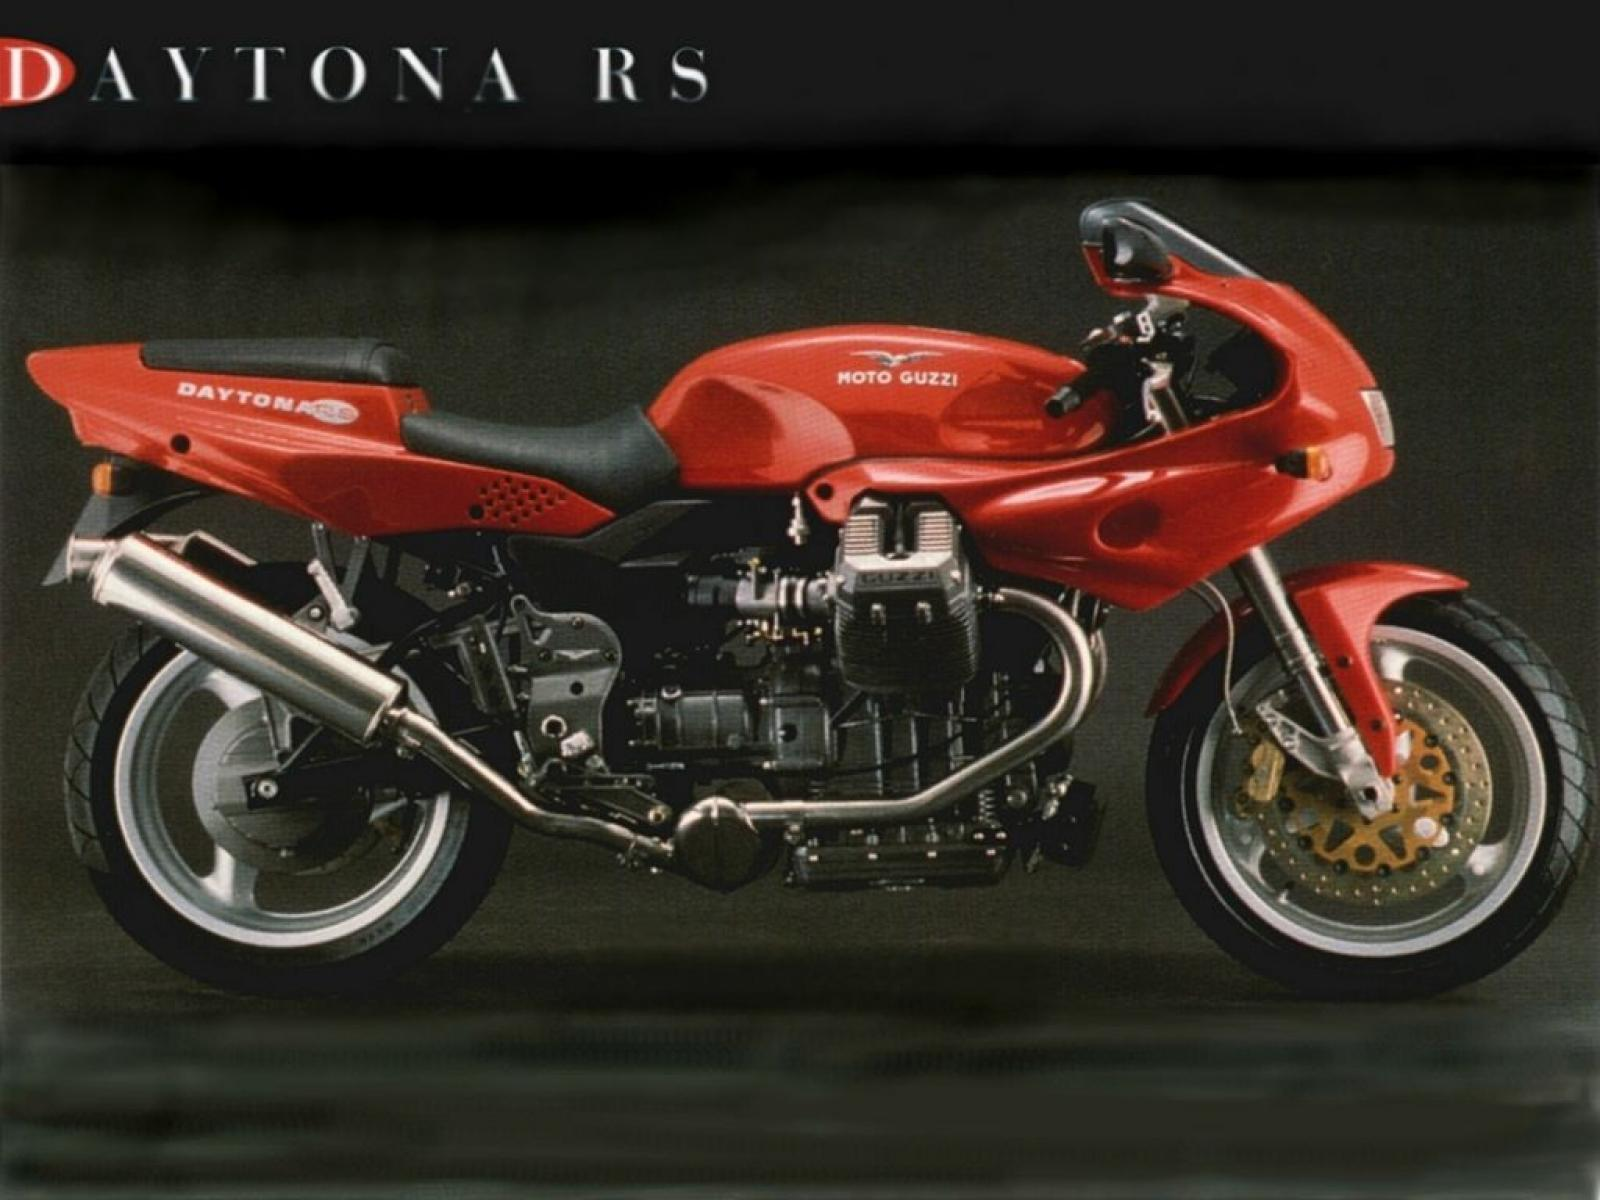 Moto Guzzi 1000 Daytona Injection images #108582